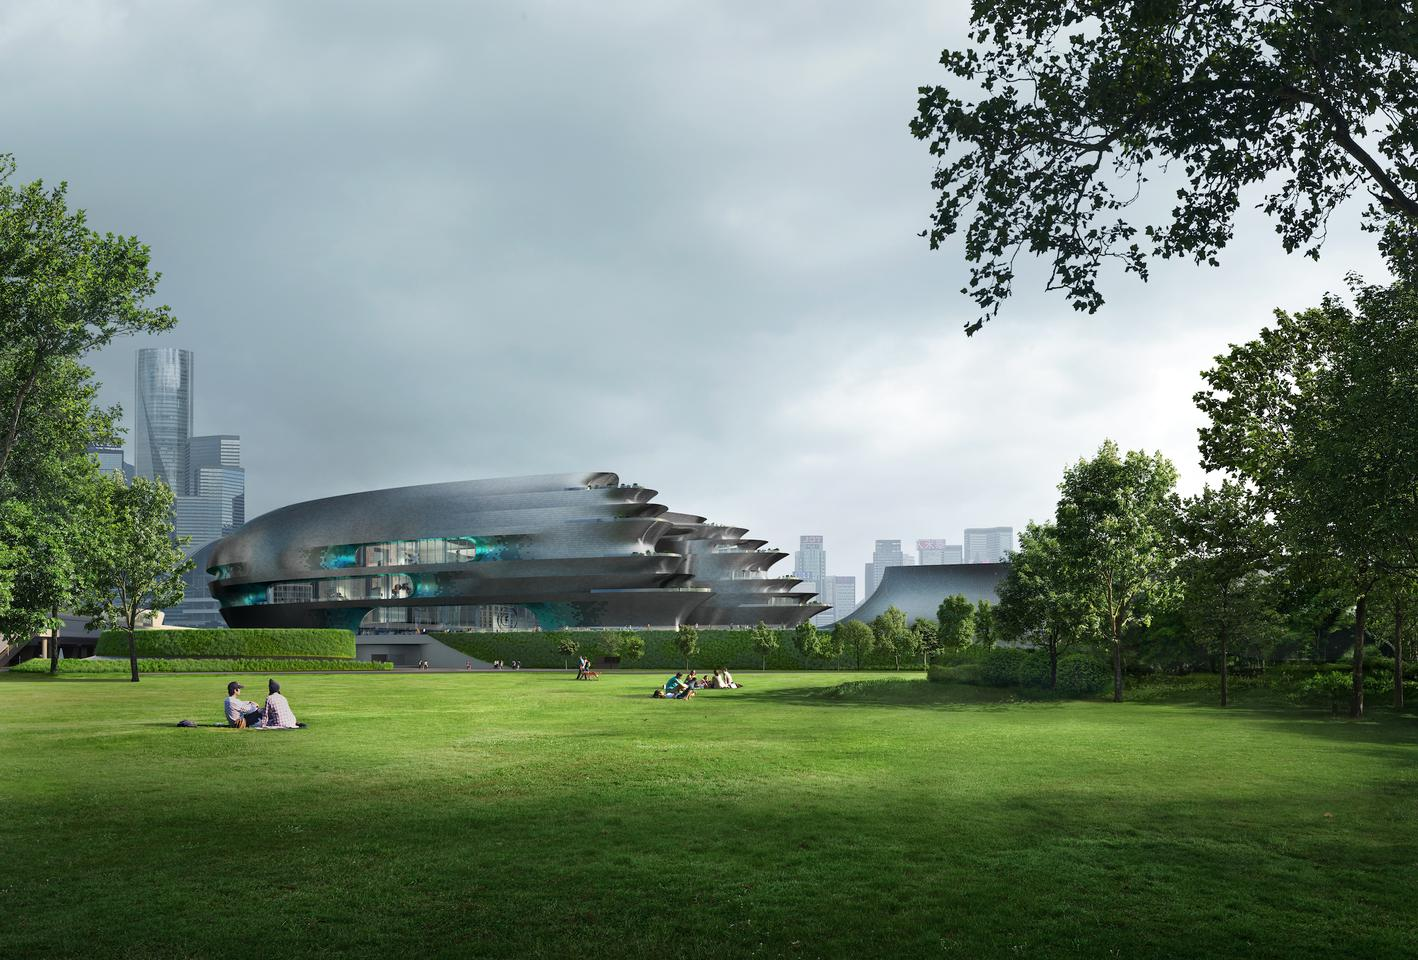 The Shenzhen Science and Technology Museum will measure around 125,000 sq m (roughly 1.3 million sq ft)